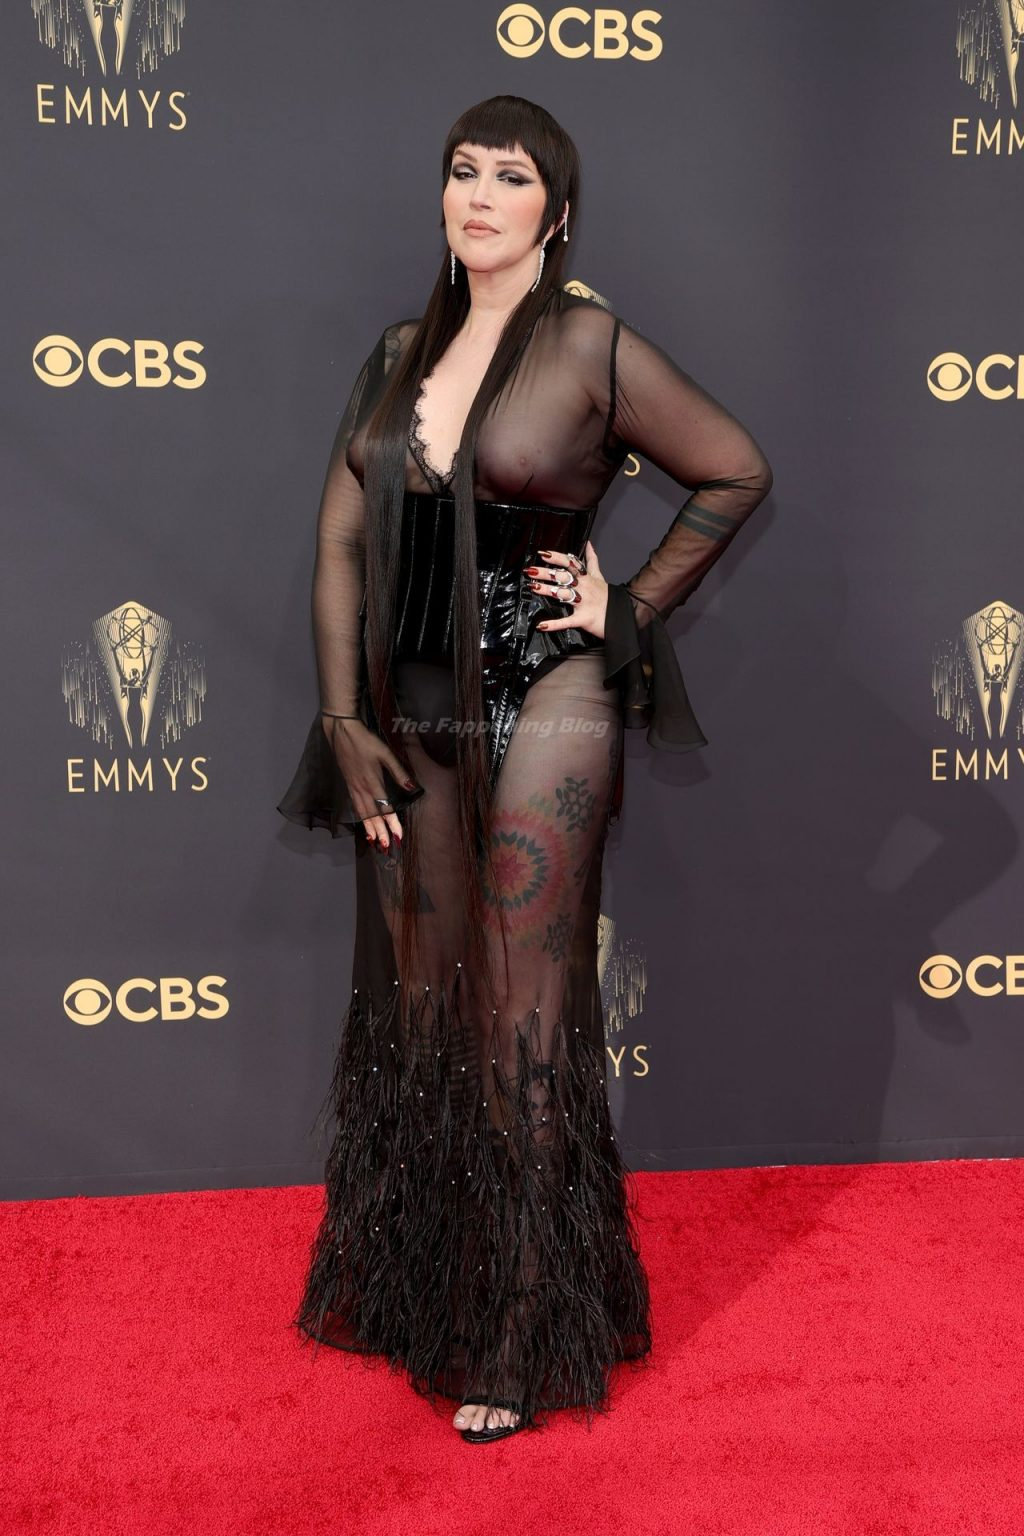 Our Lady J Shows Off Her Nude Tits at the 73rd Primetime Emmy Awards in Los Angeles (9 Photos)